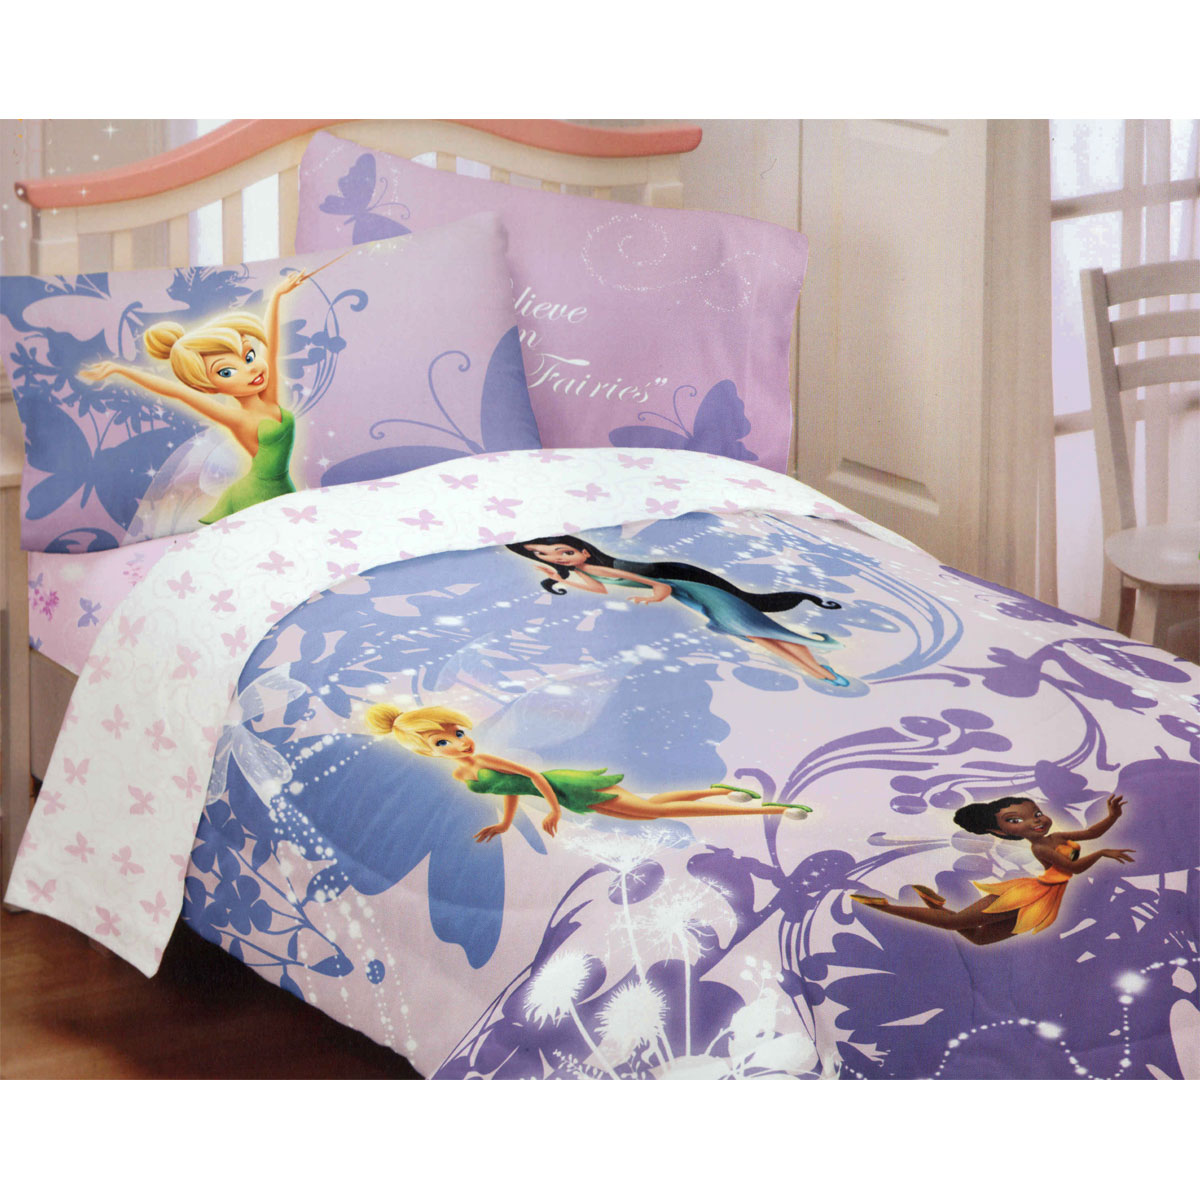 Disney Tinkerbell and Friends Bedding